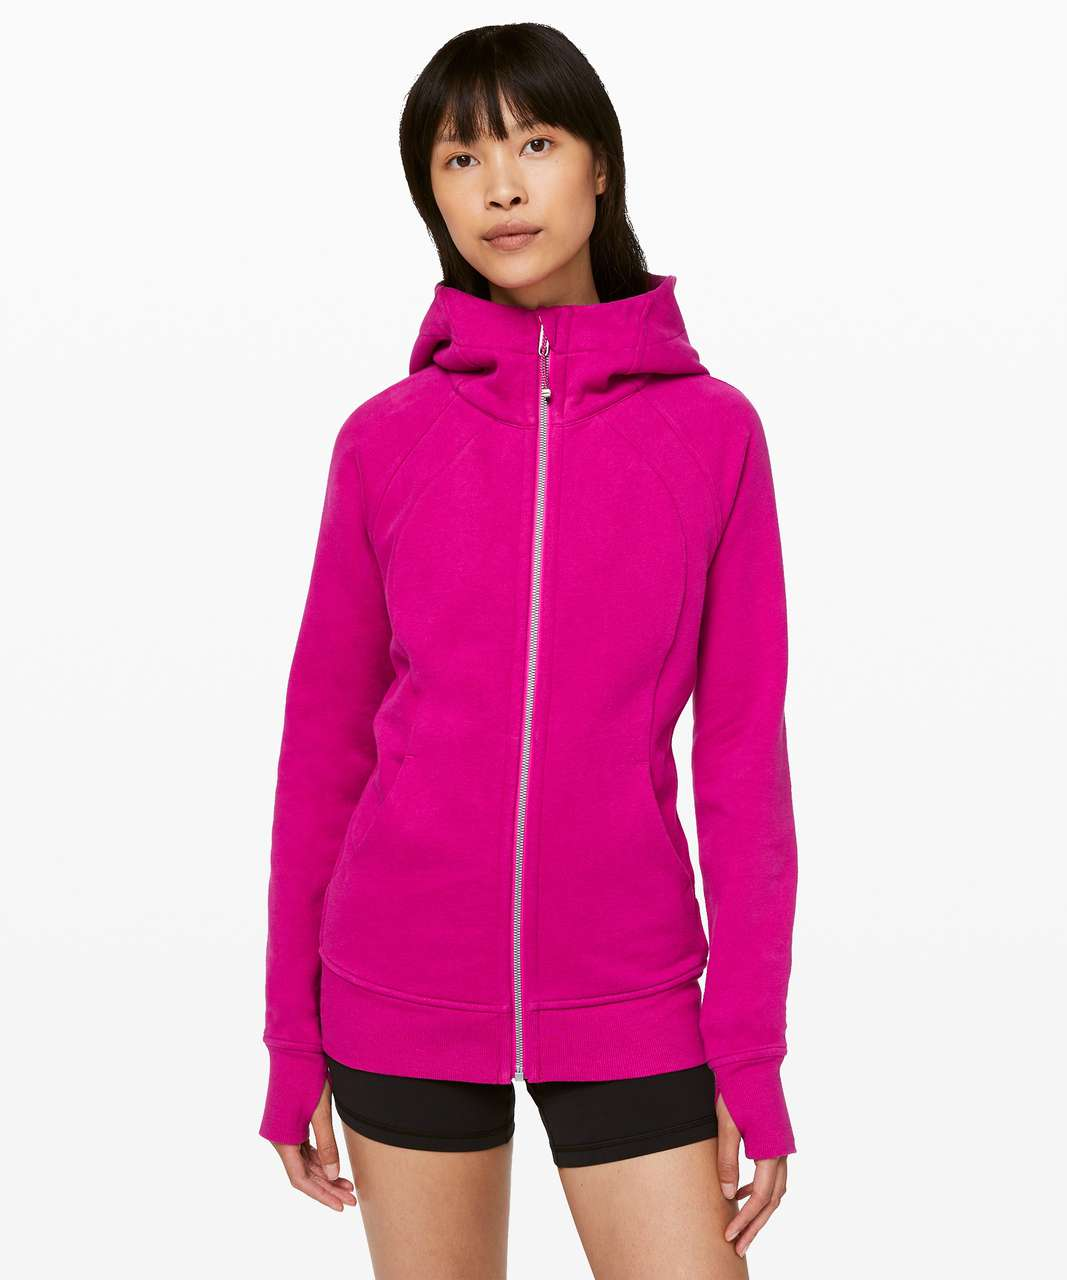 Lululemon Scuba Hoodie *Light Cotton Fleece - Fantom Fuchsia